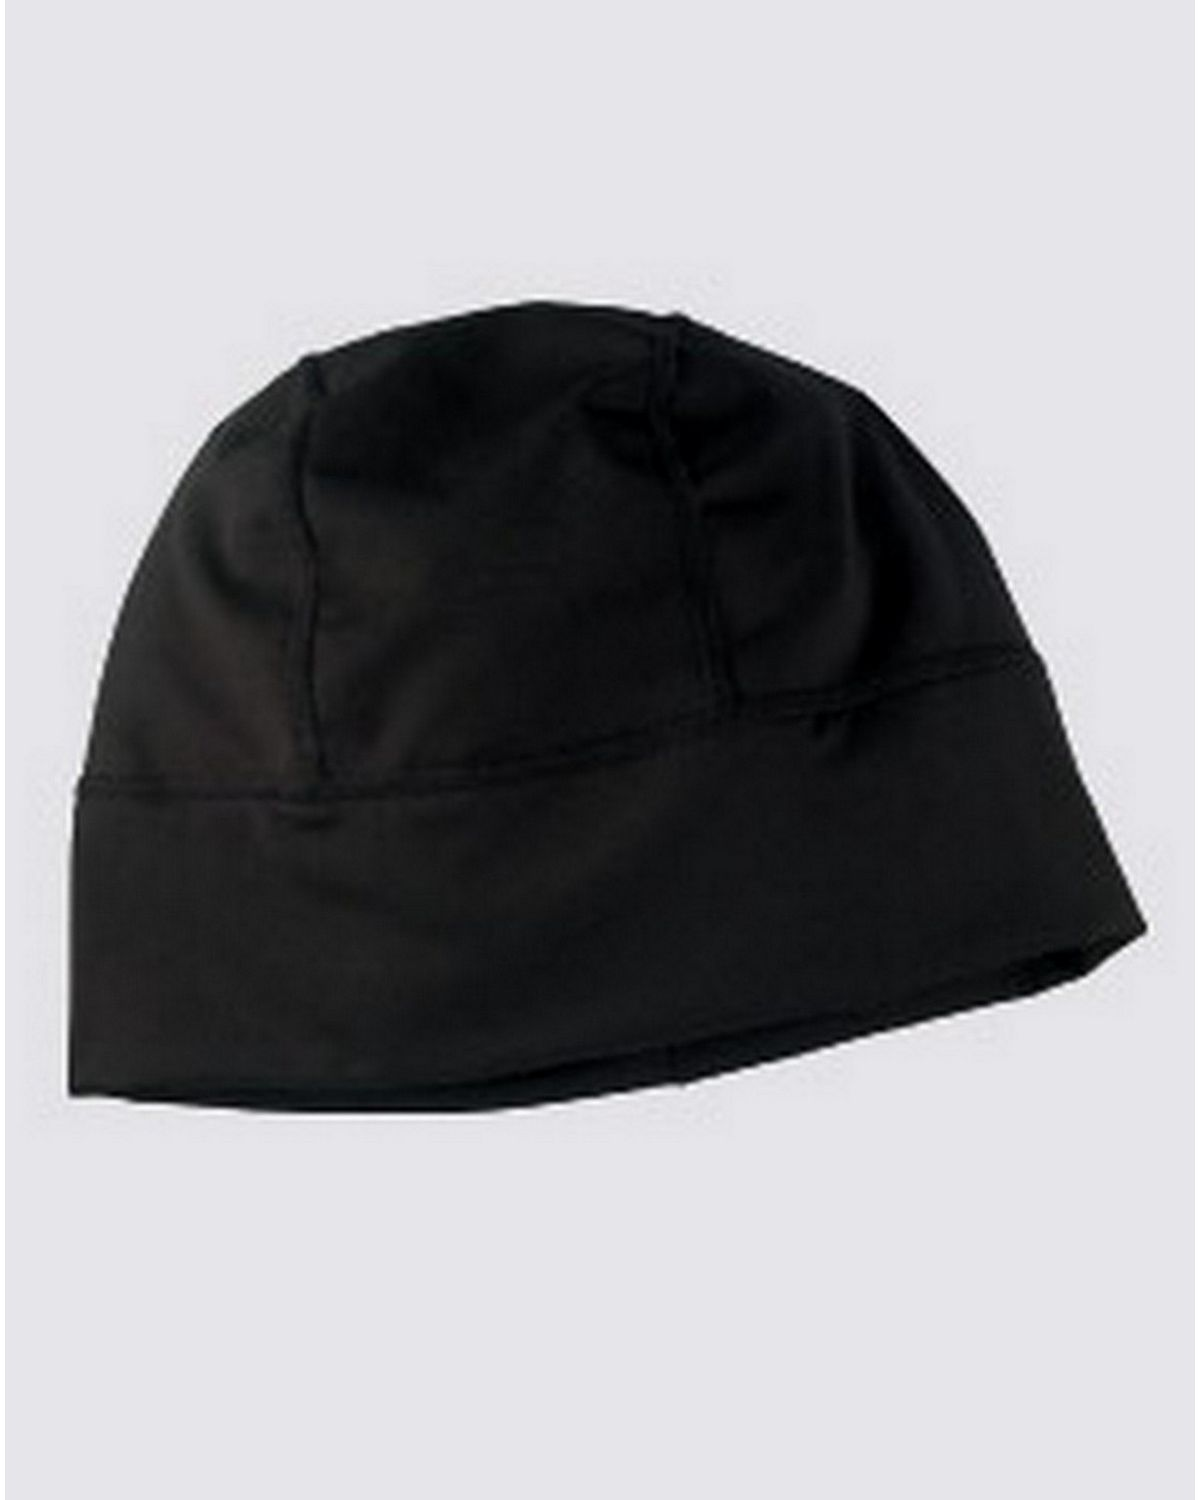 Big Accessories BA513 Performance Beanie - Black - One Size BA513